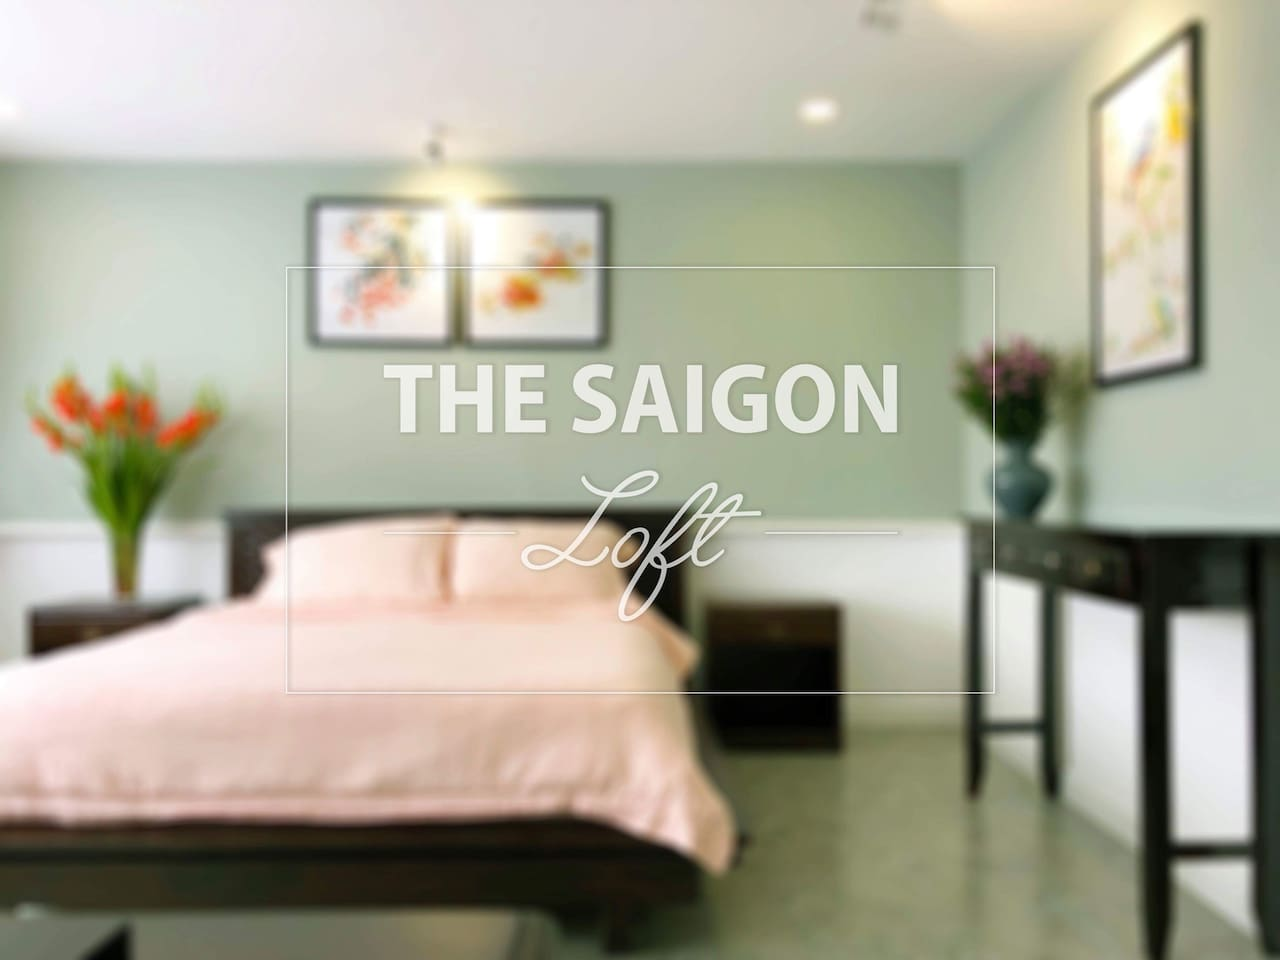 Saigon-Tan Dinh Riverside Loft